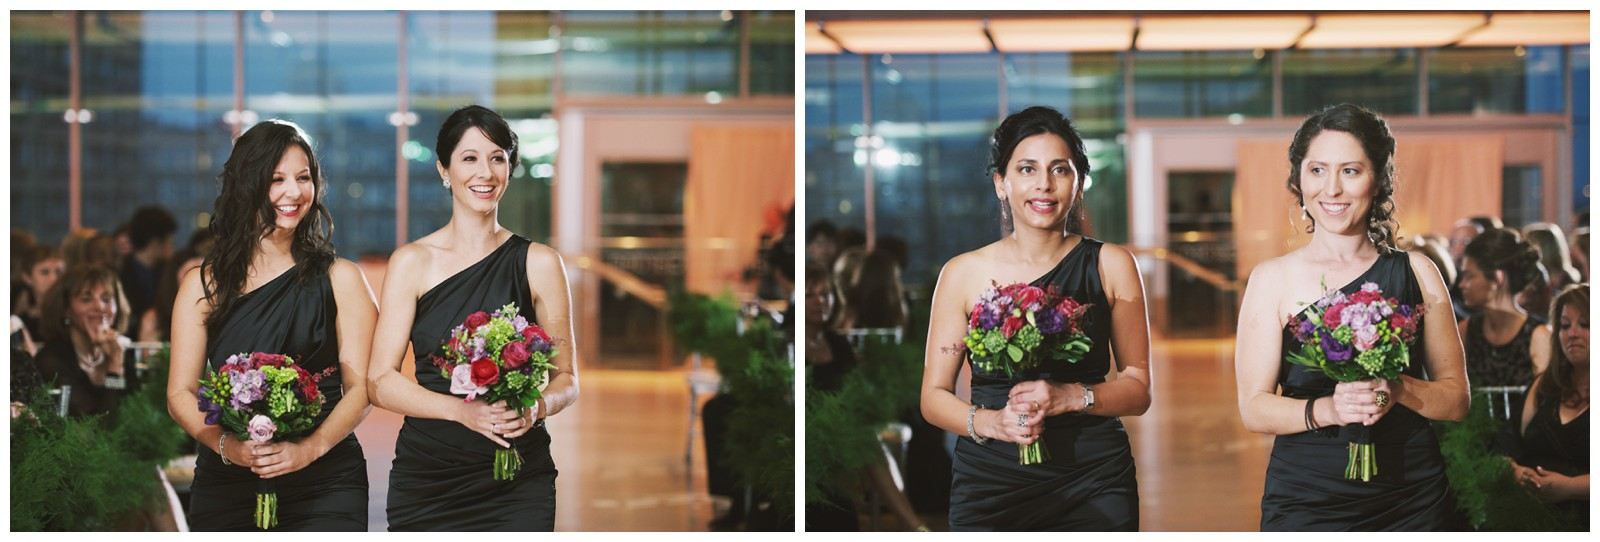 Vanessa and Adam's Wedding at Kimmel Center Philadelphia_0046